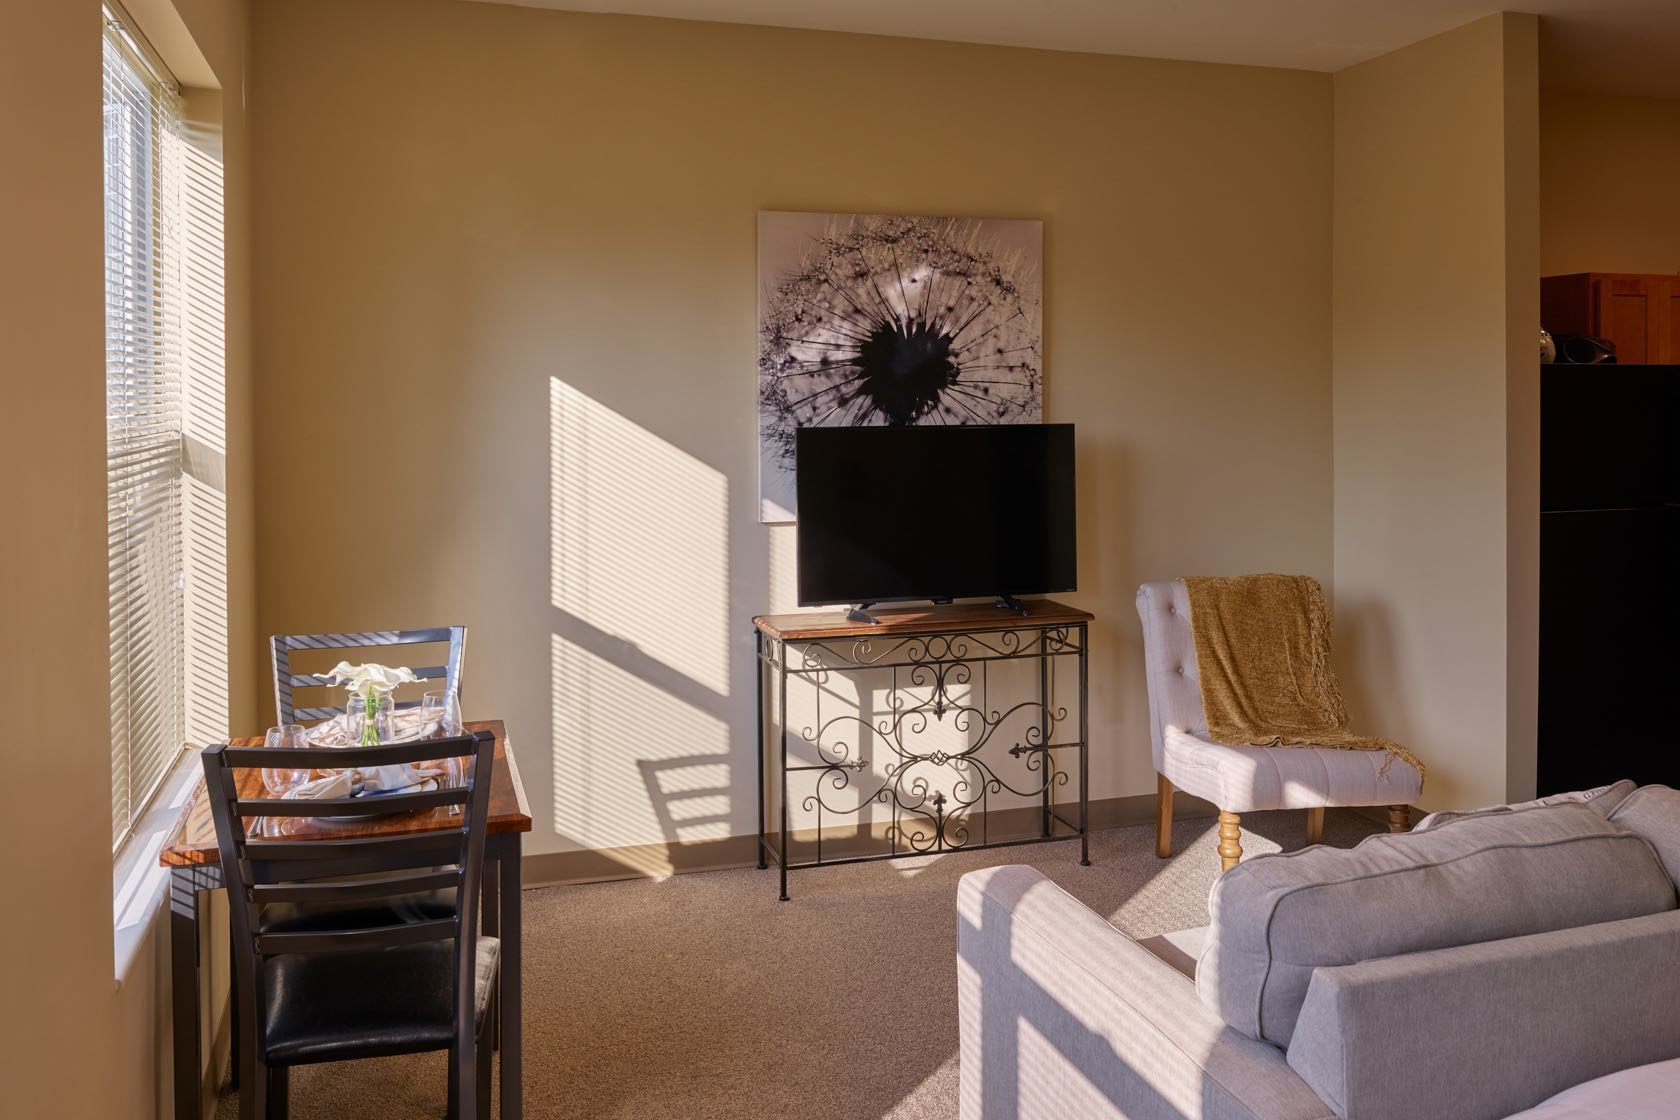 Studio Apartment in Michigan City IN at Silver Birch Senior Living Community